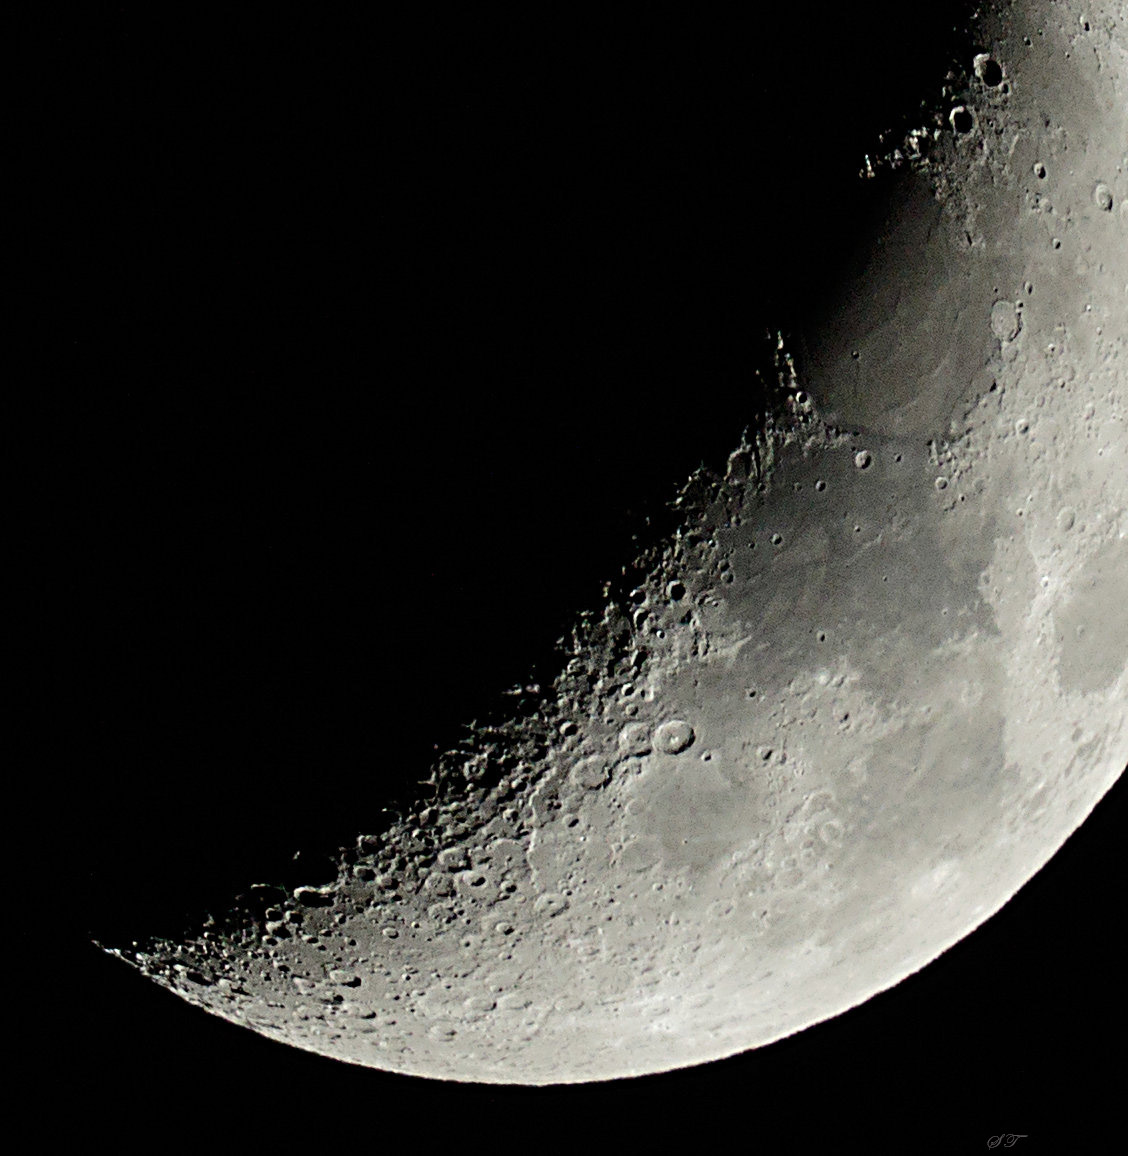 088_700mm_181213_BY_320A8957_lr_5DaysOld_Moon.jpg